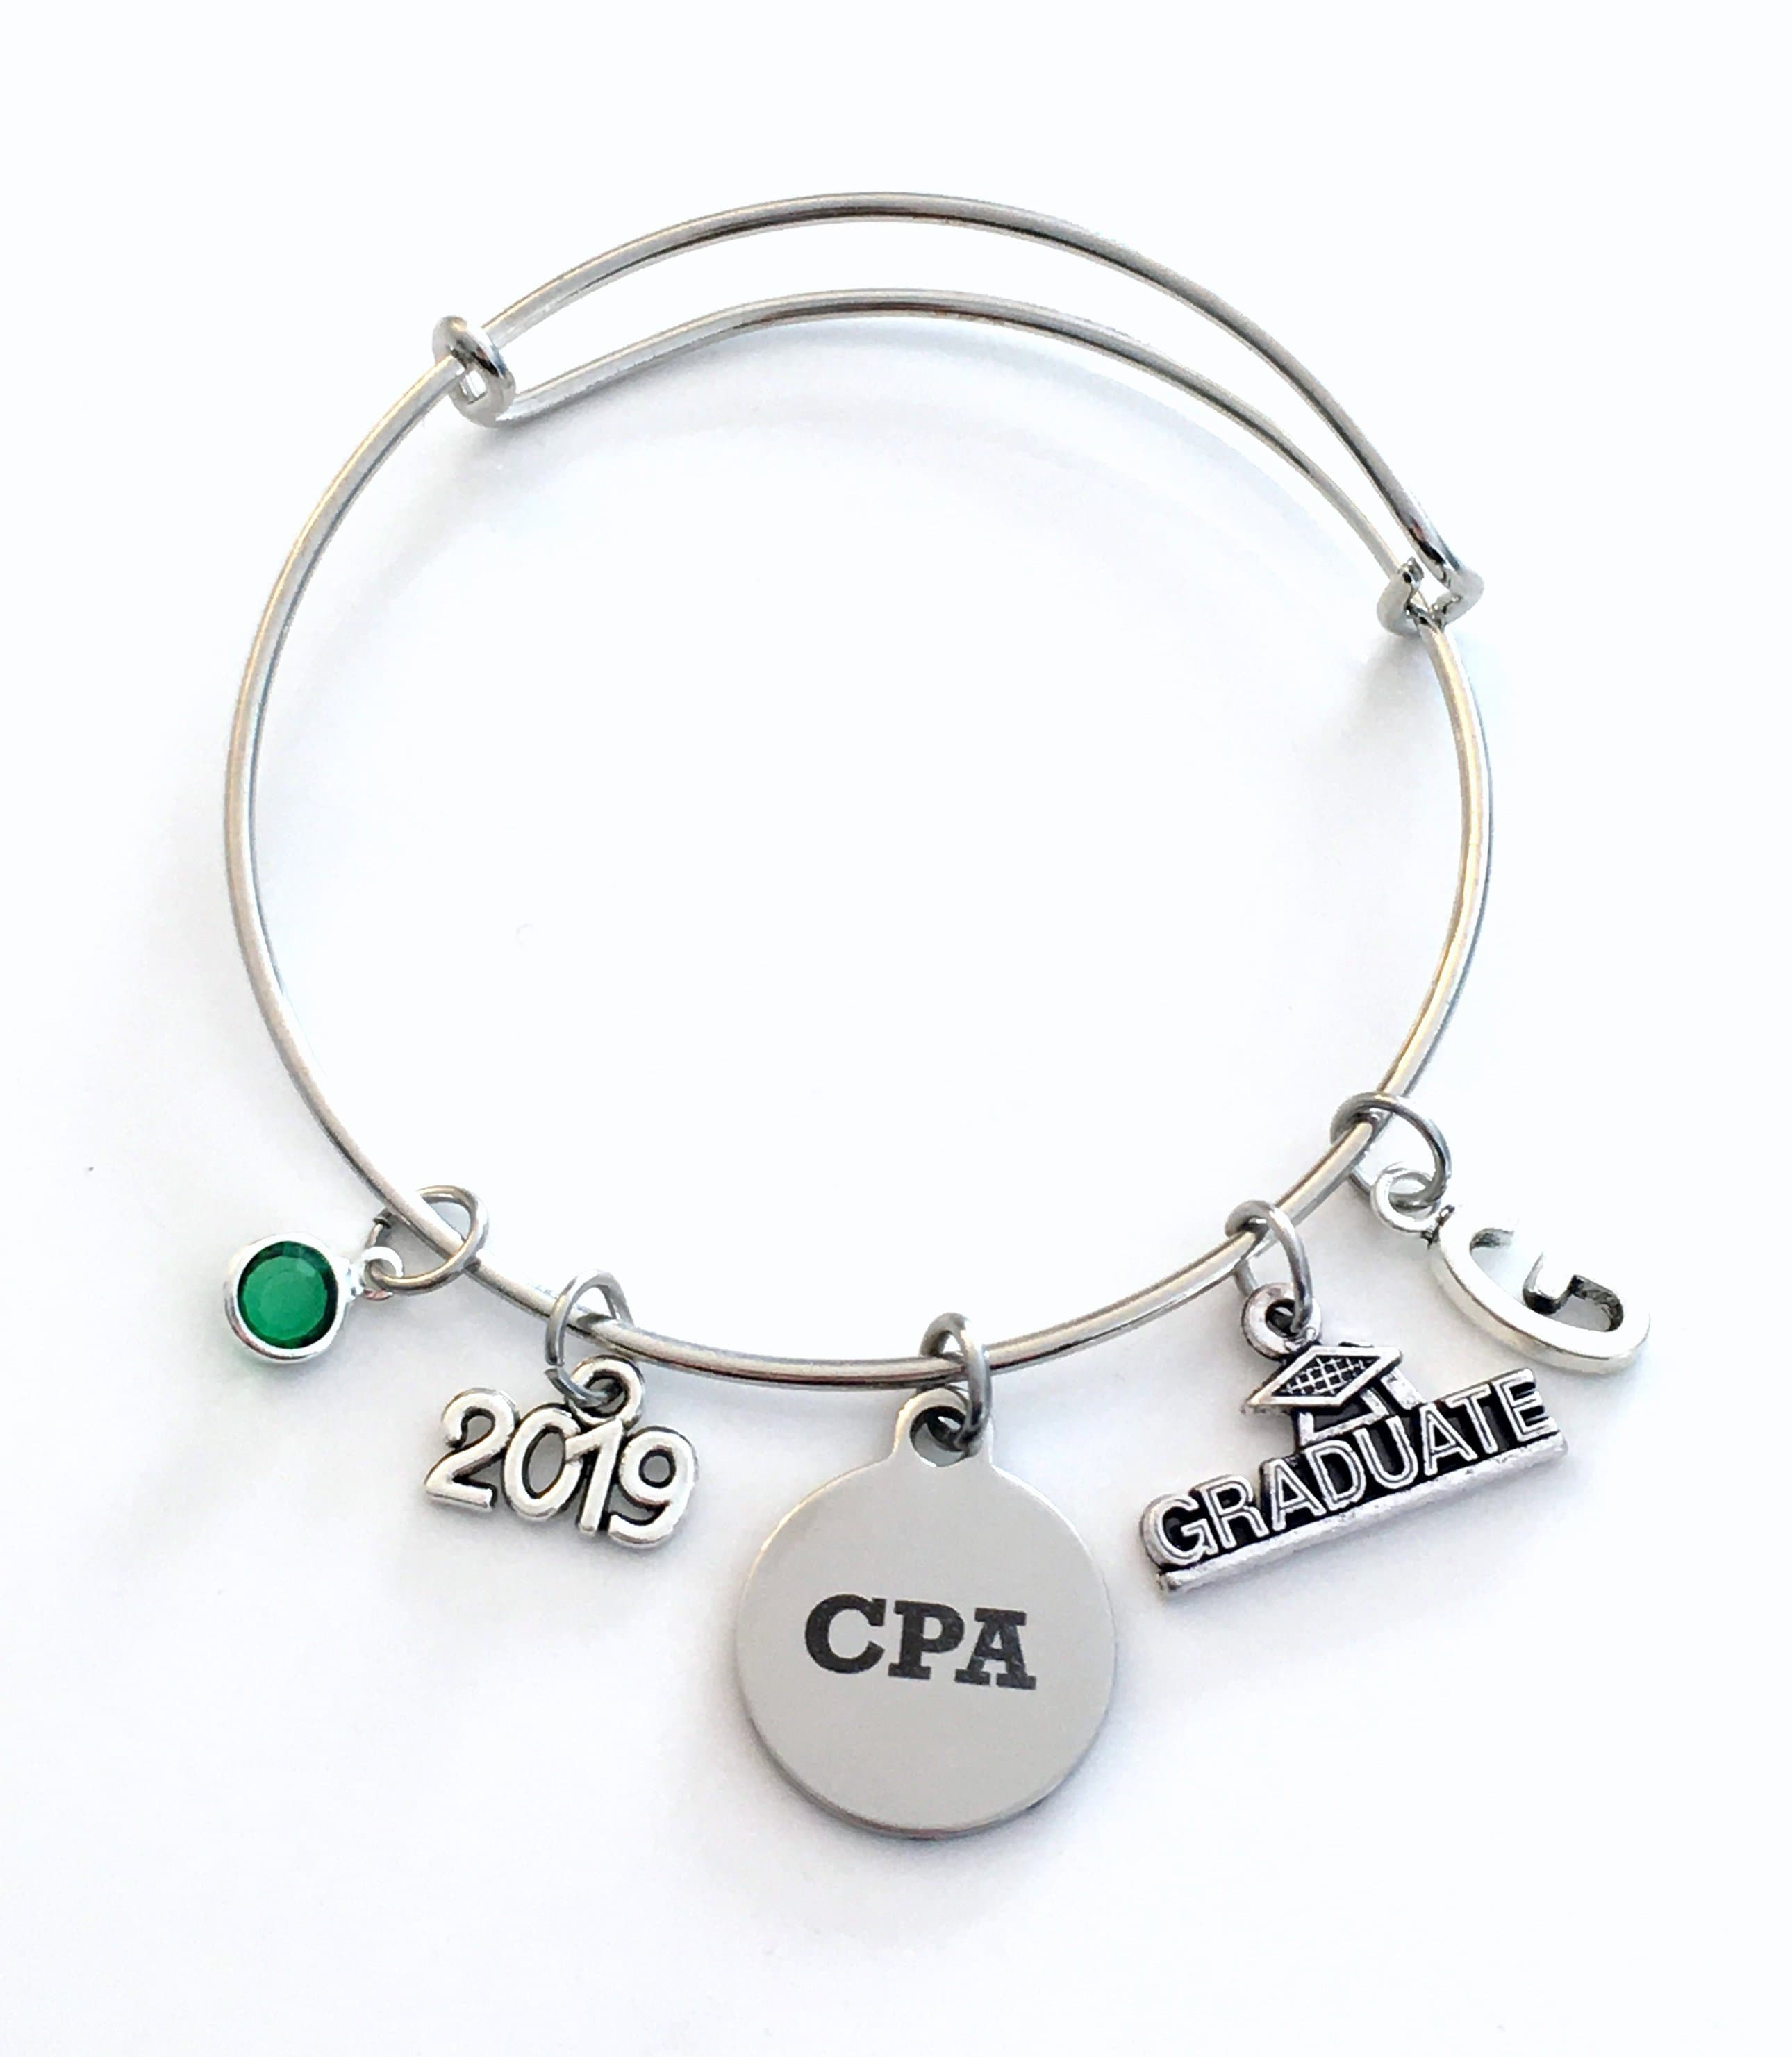 Chartered Accountant Cpa Graduation Gift For Cpa 2019 Charm Bracelet Chartered Accountant